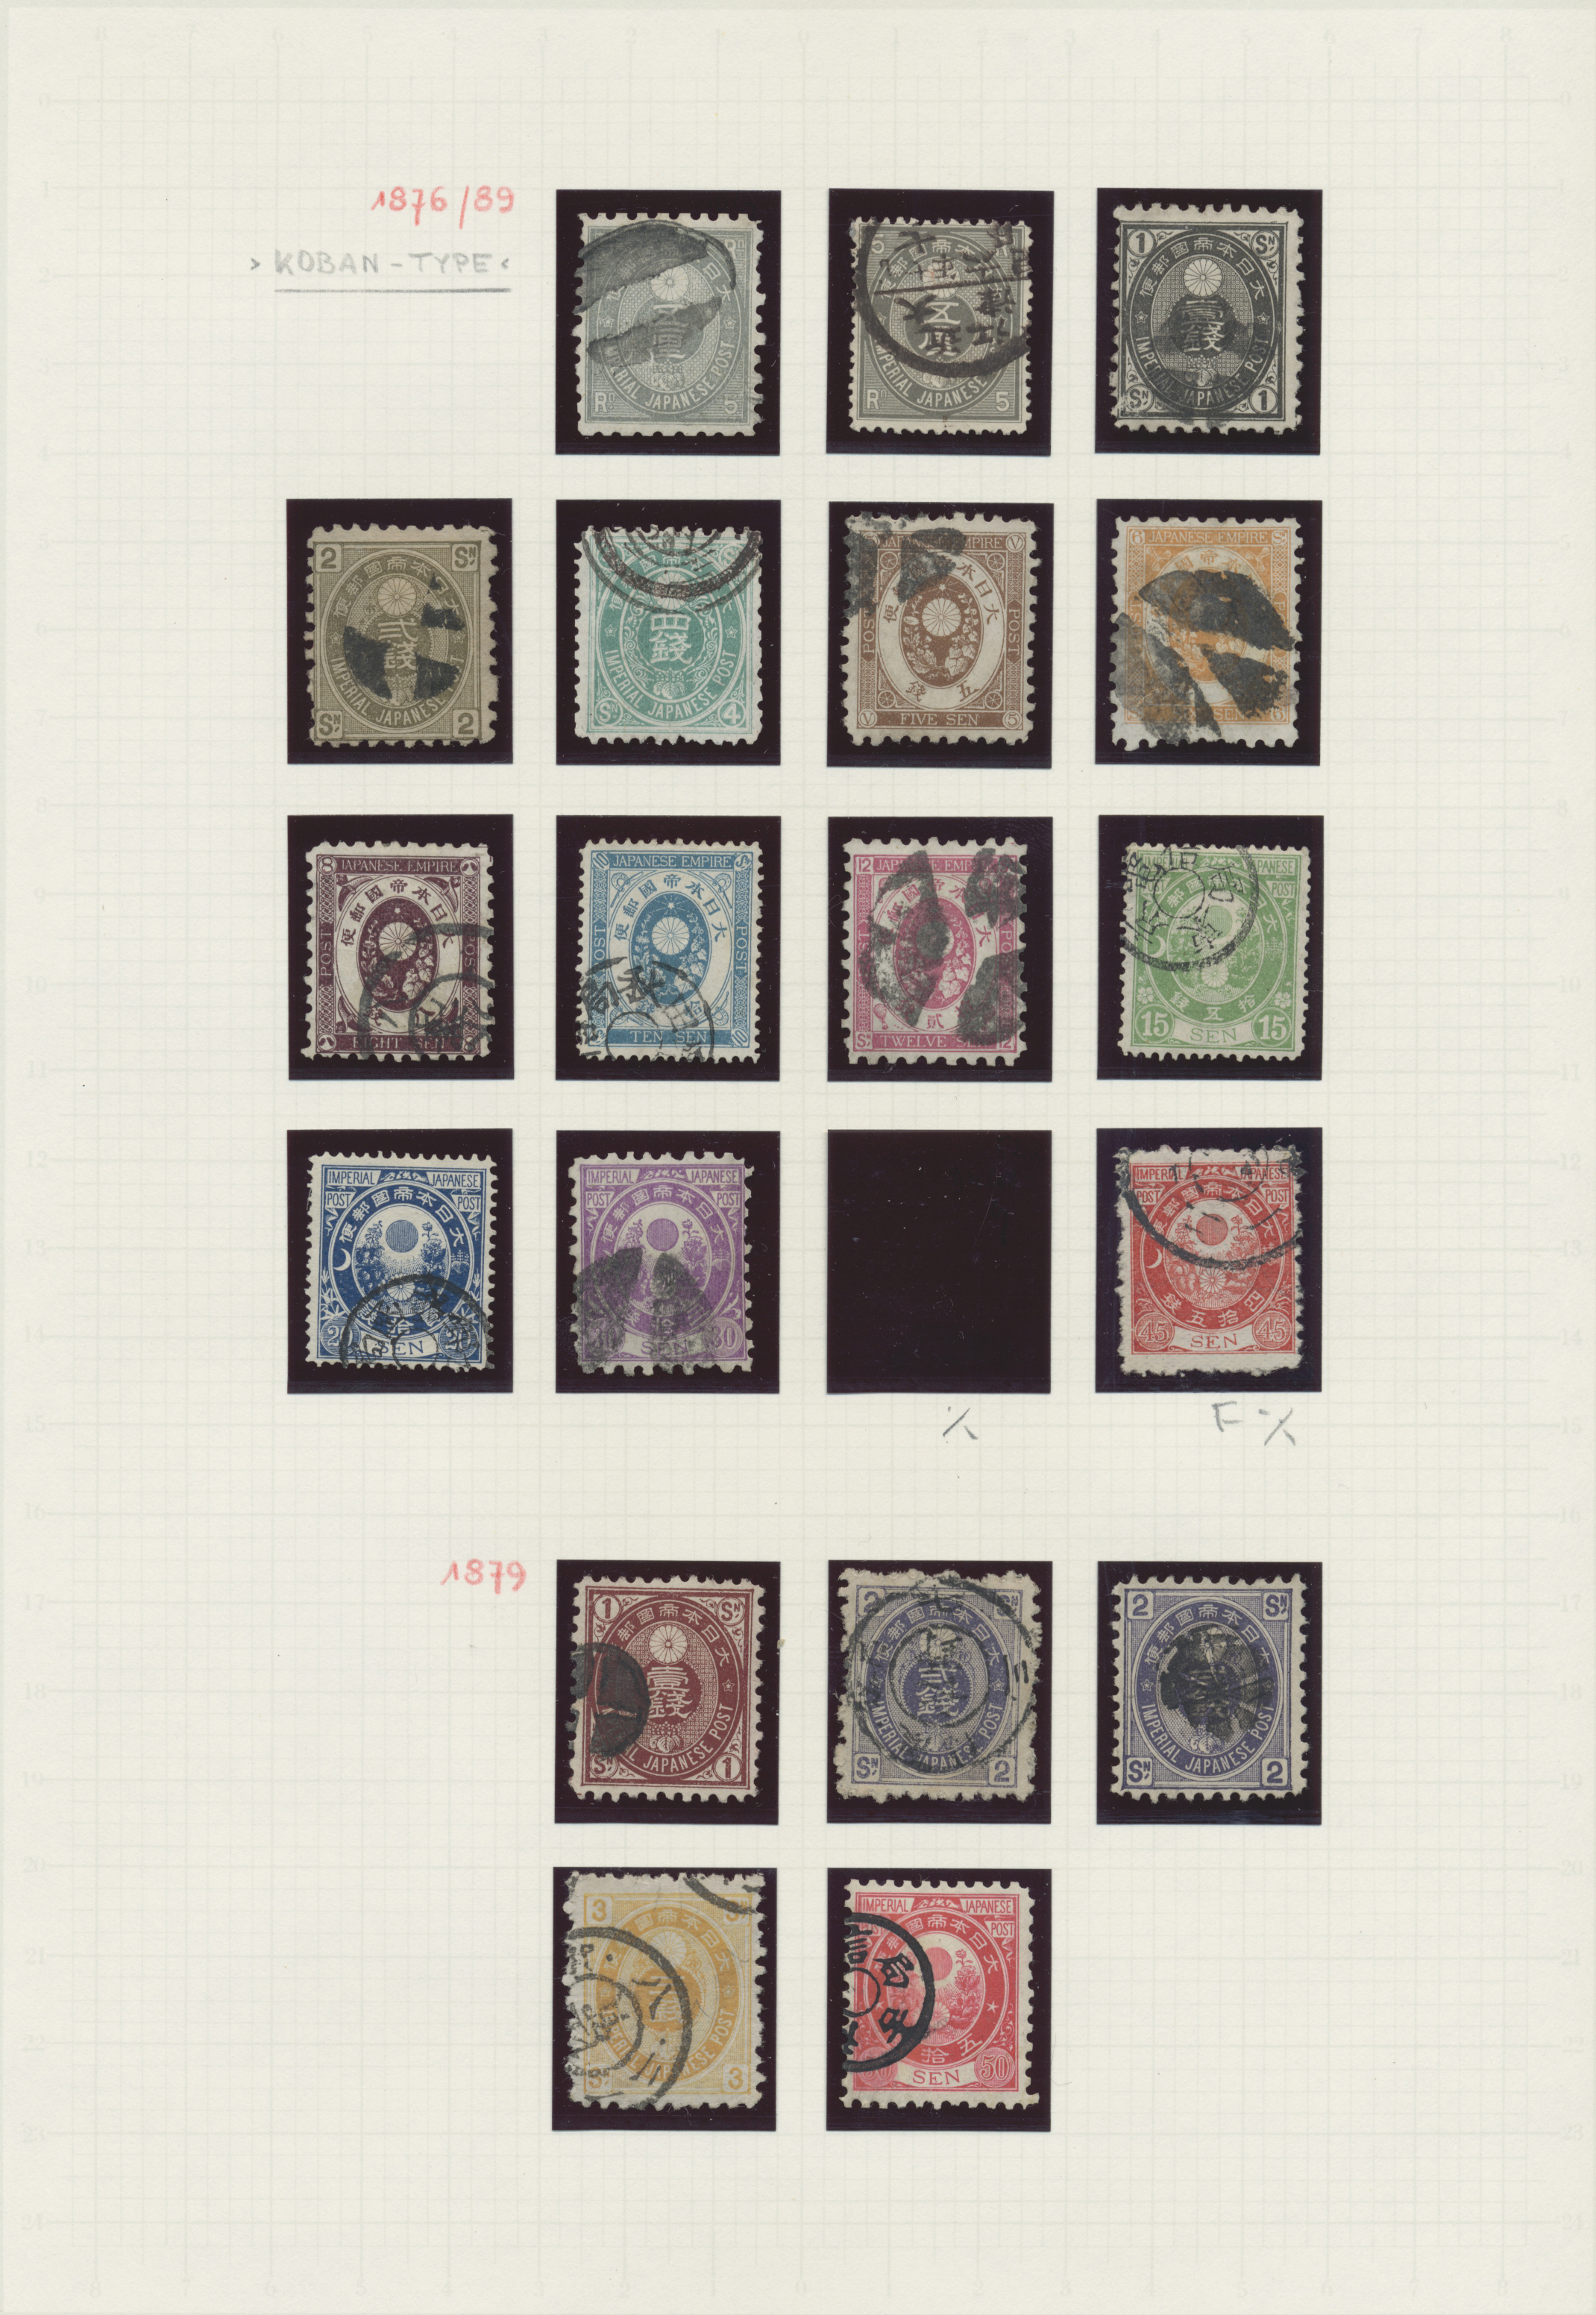 Lot 13568 - Japan  -  Auktionshaus Christoph Gärtner GmbH & Co. KG Sale #48 collections Overseas  Airmail / Ship mail & Thematics